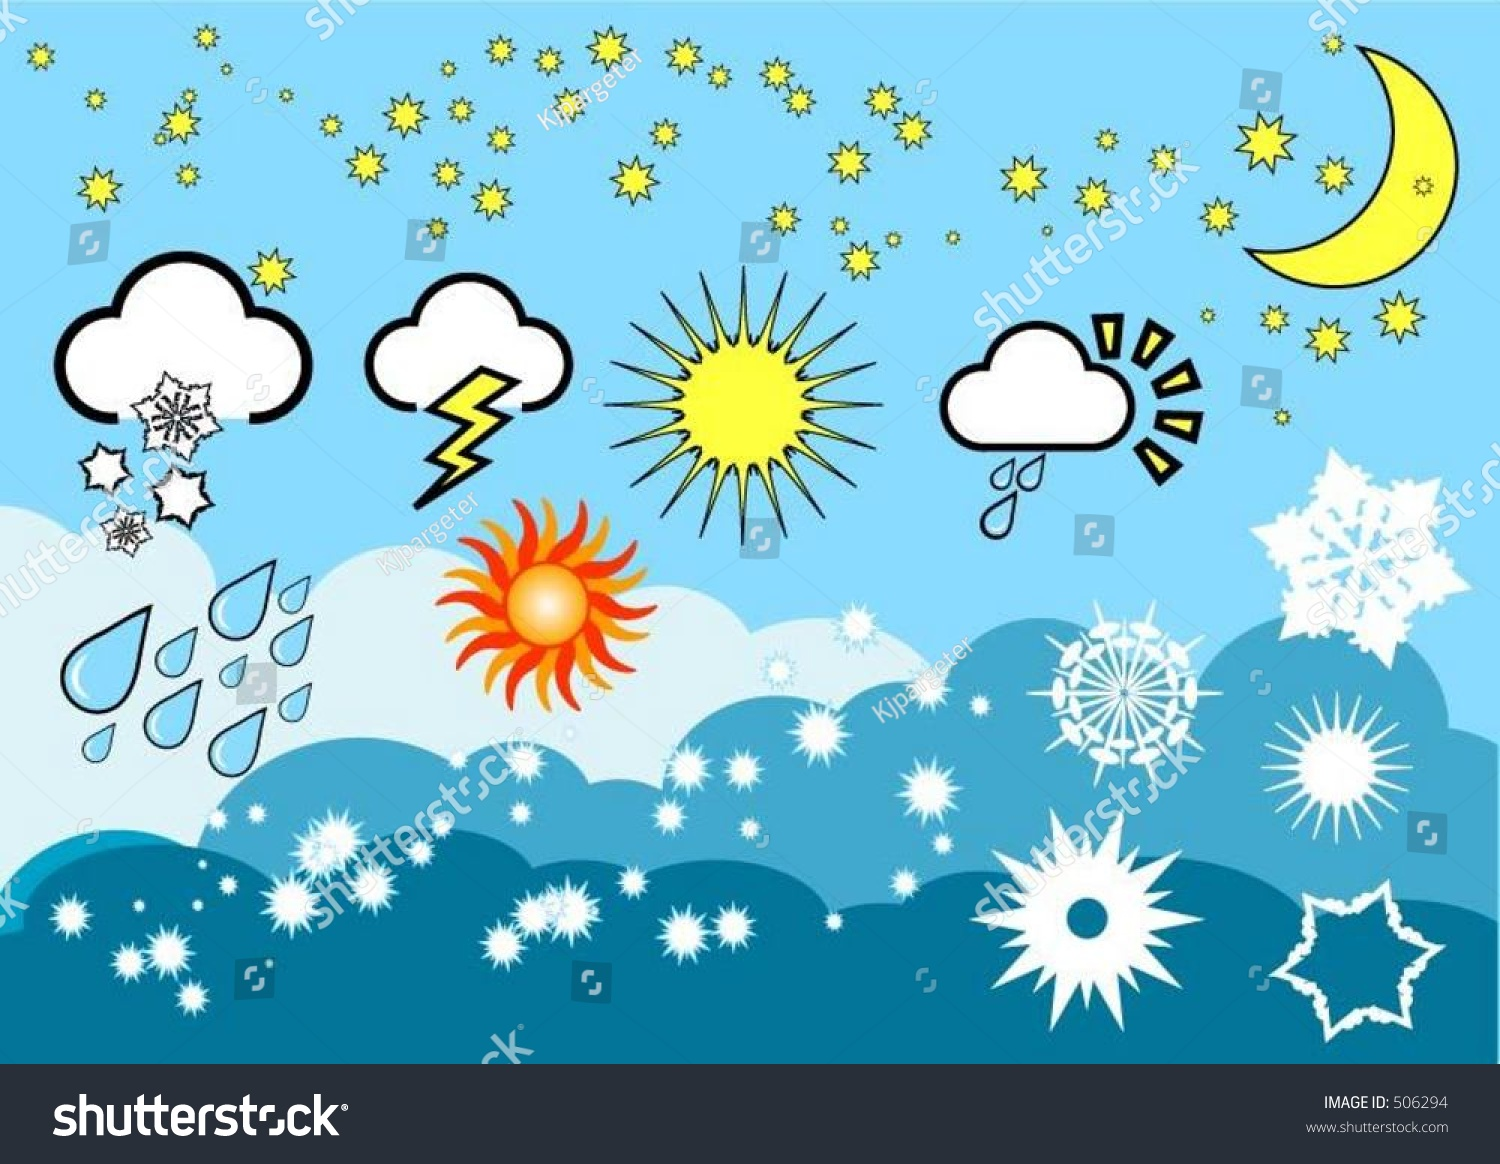 Weather Elements Vector Stock Vector 506294 - Shutterstock